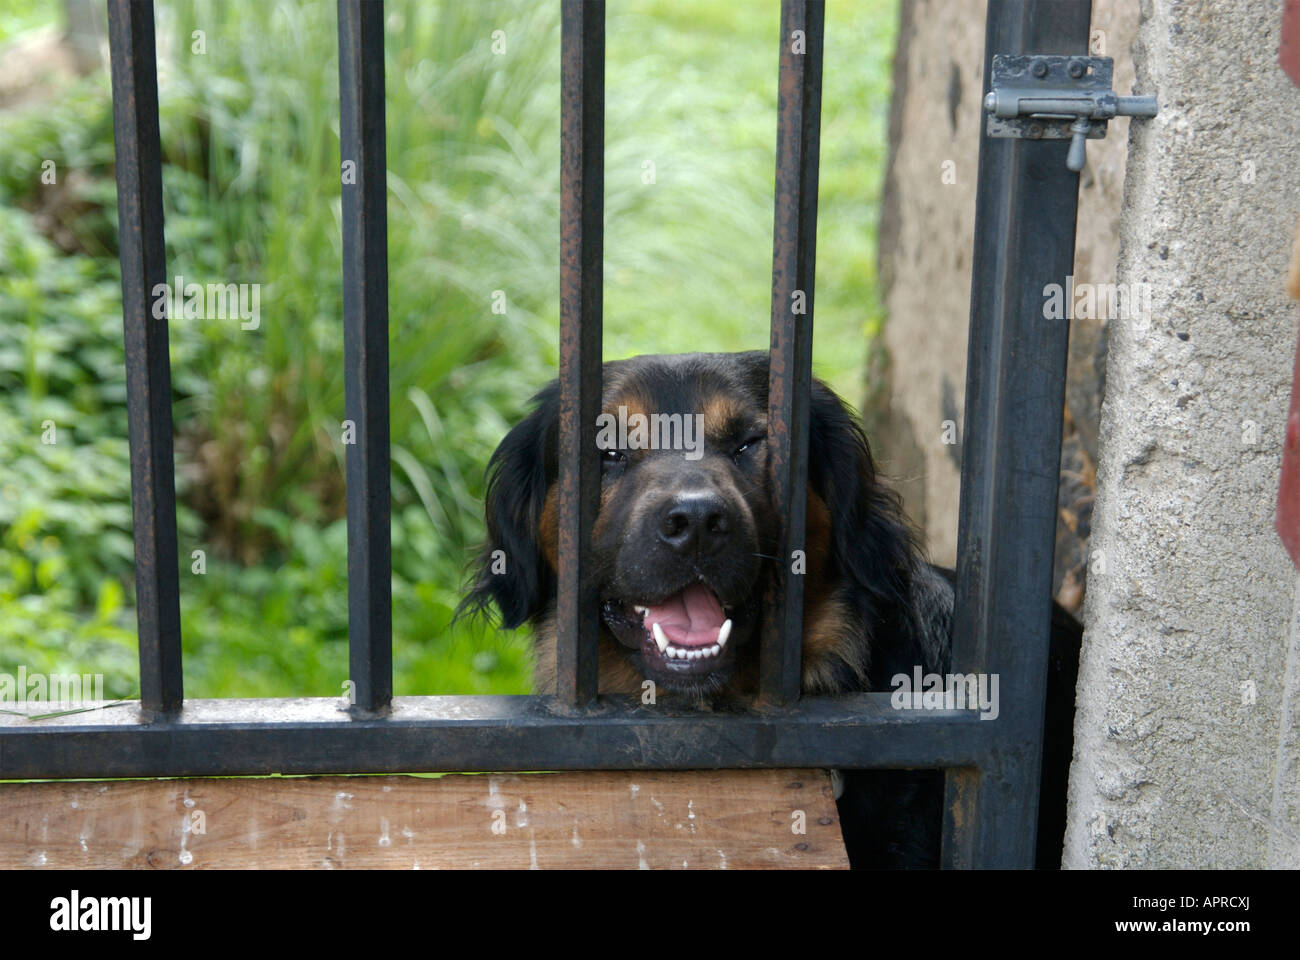 Aggressive dog at a garden gate - Stock Image